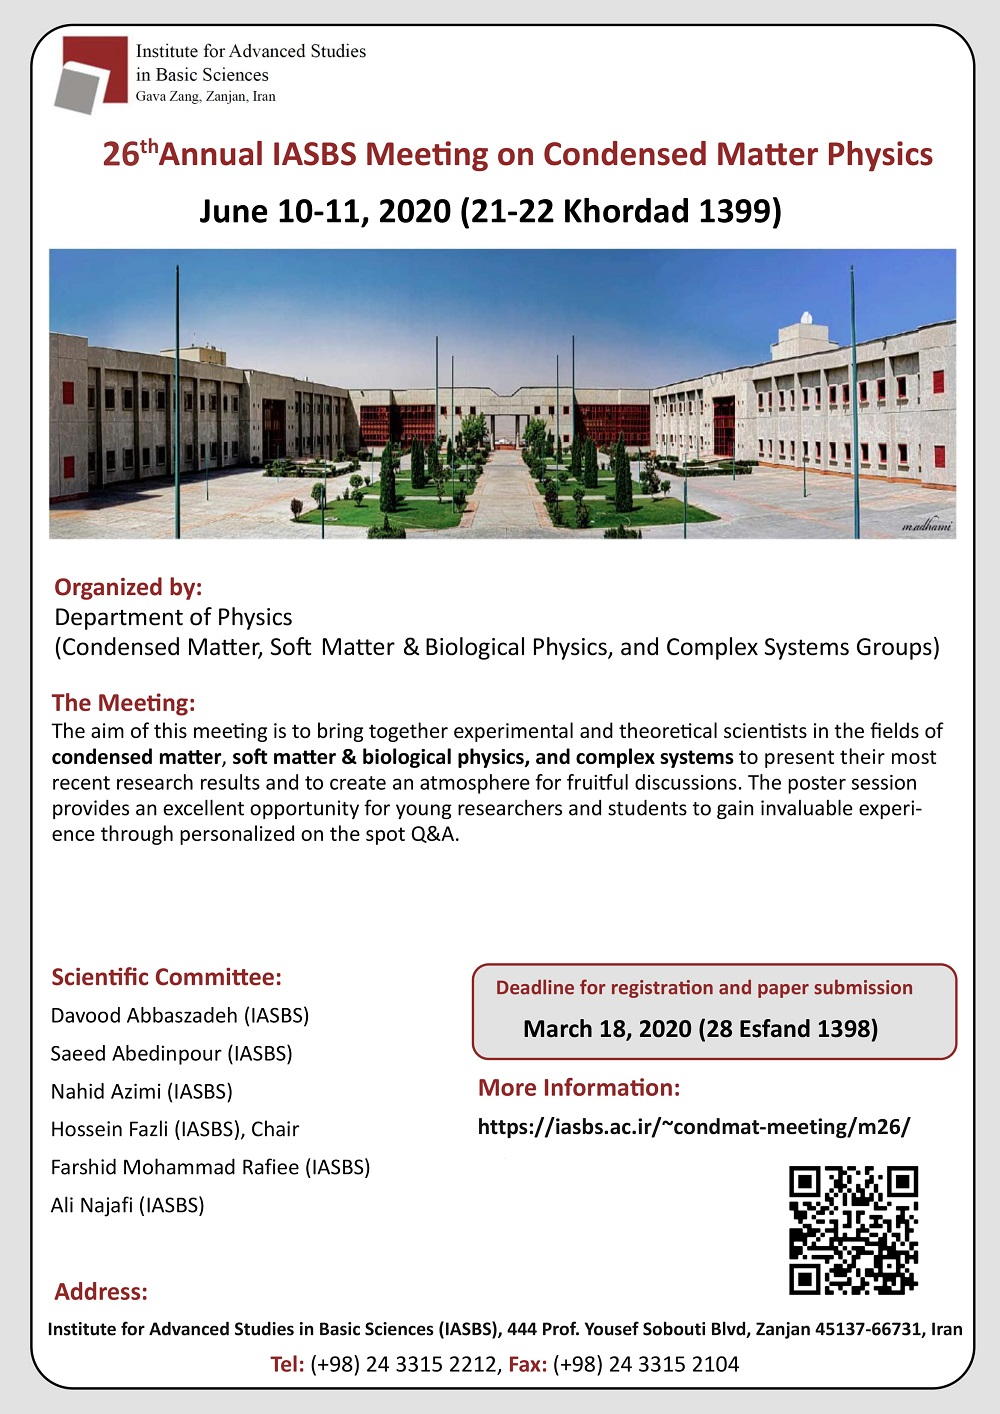 26th Annual IASBS Meeting on Condensed Matter Physics: June 10-11, 2020